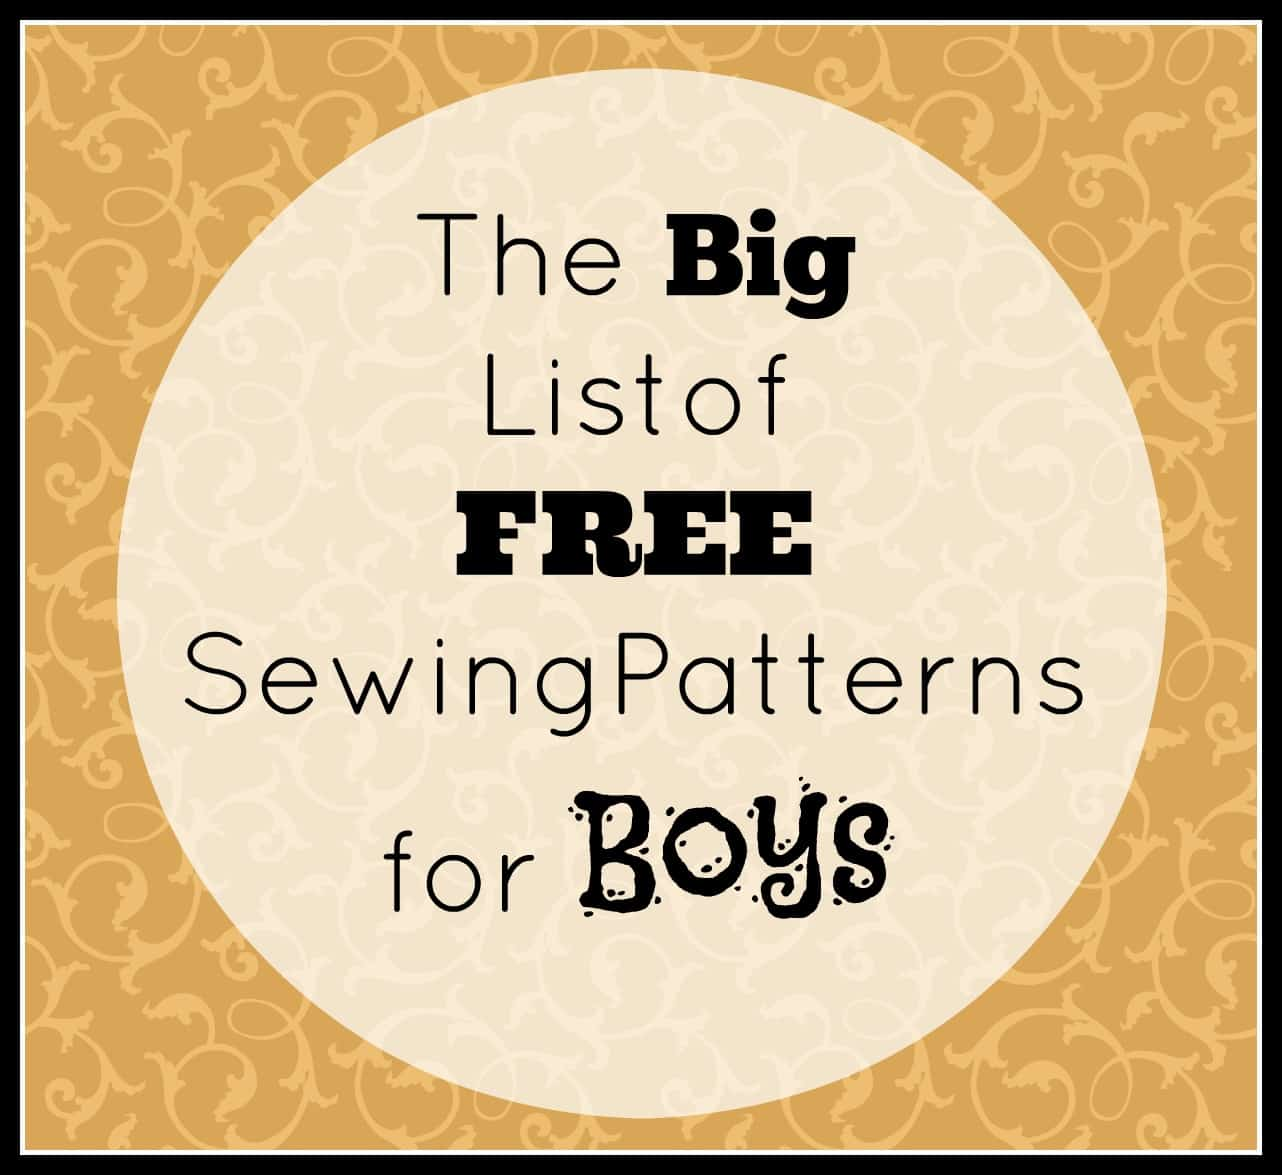 Big list of free sewing patterns for boys the big list of free sewing patterns for boys jeuxipadfo Gallery